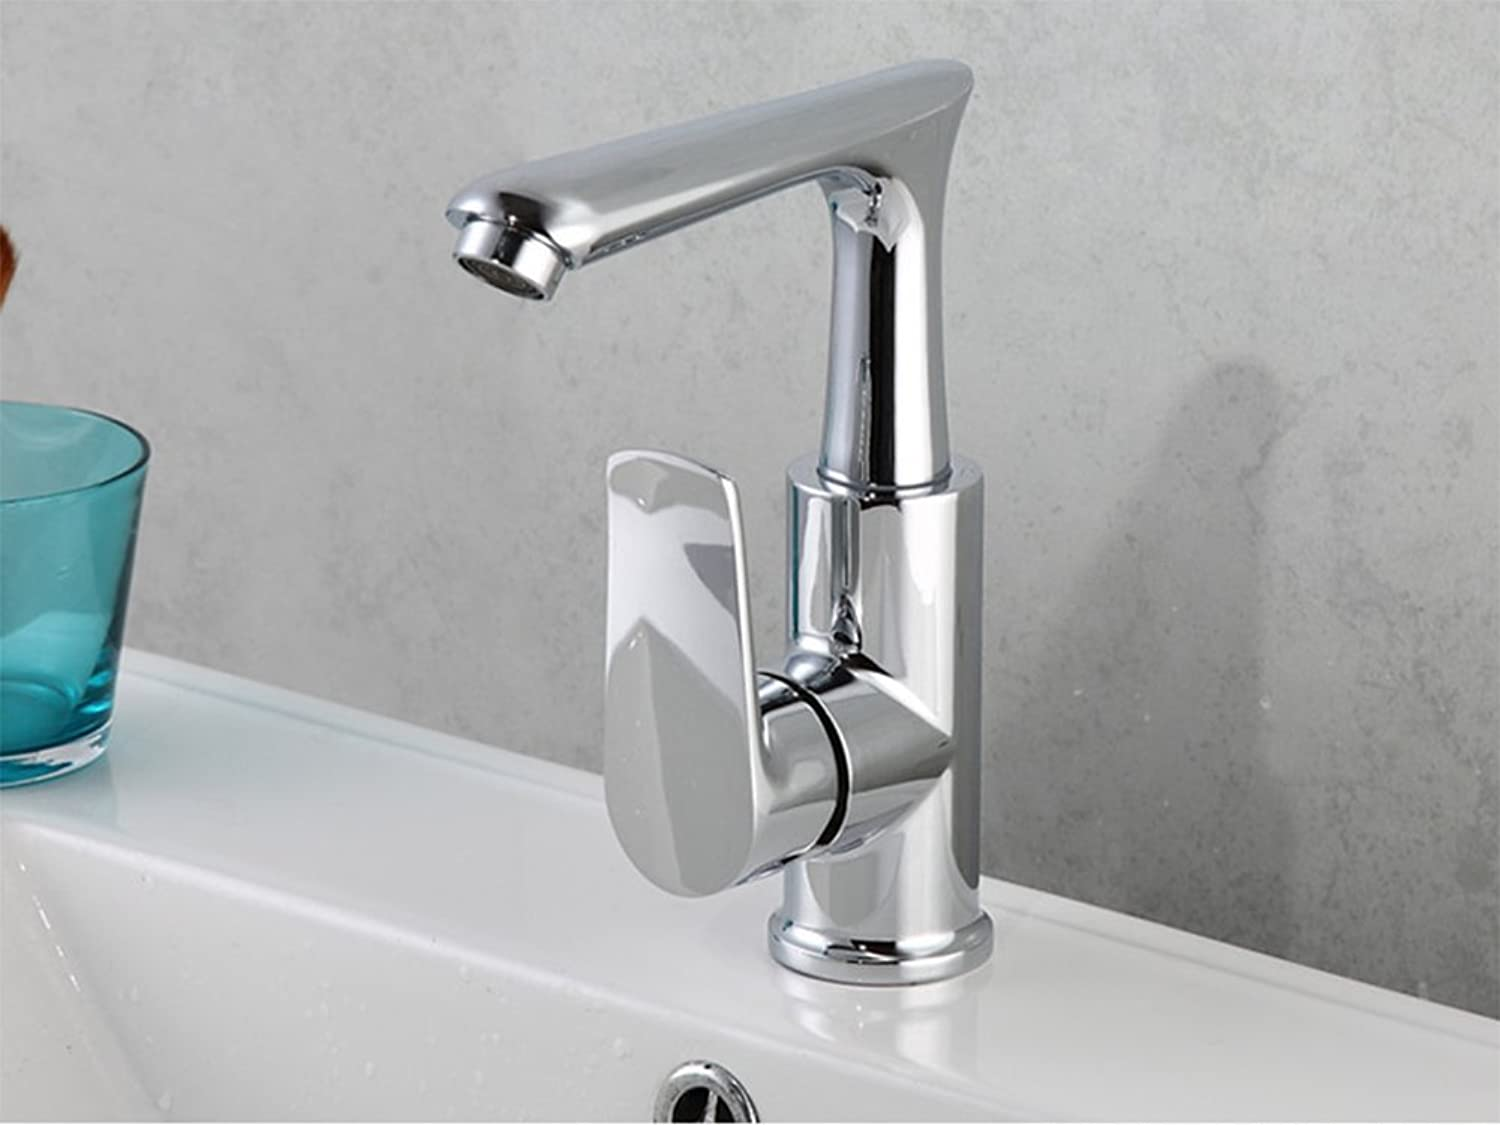 Bathroom washbasin Faucet, Copper hot and Cold Mixed Faucet, Sink Faucet